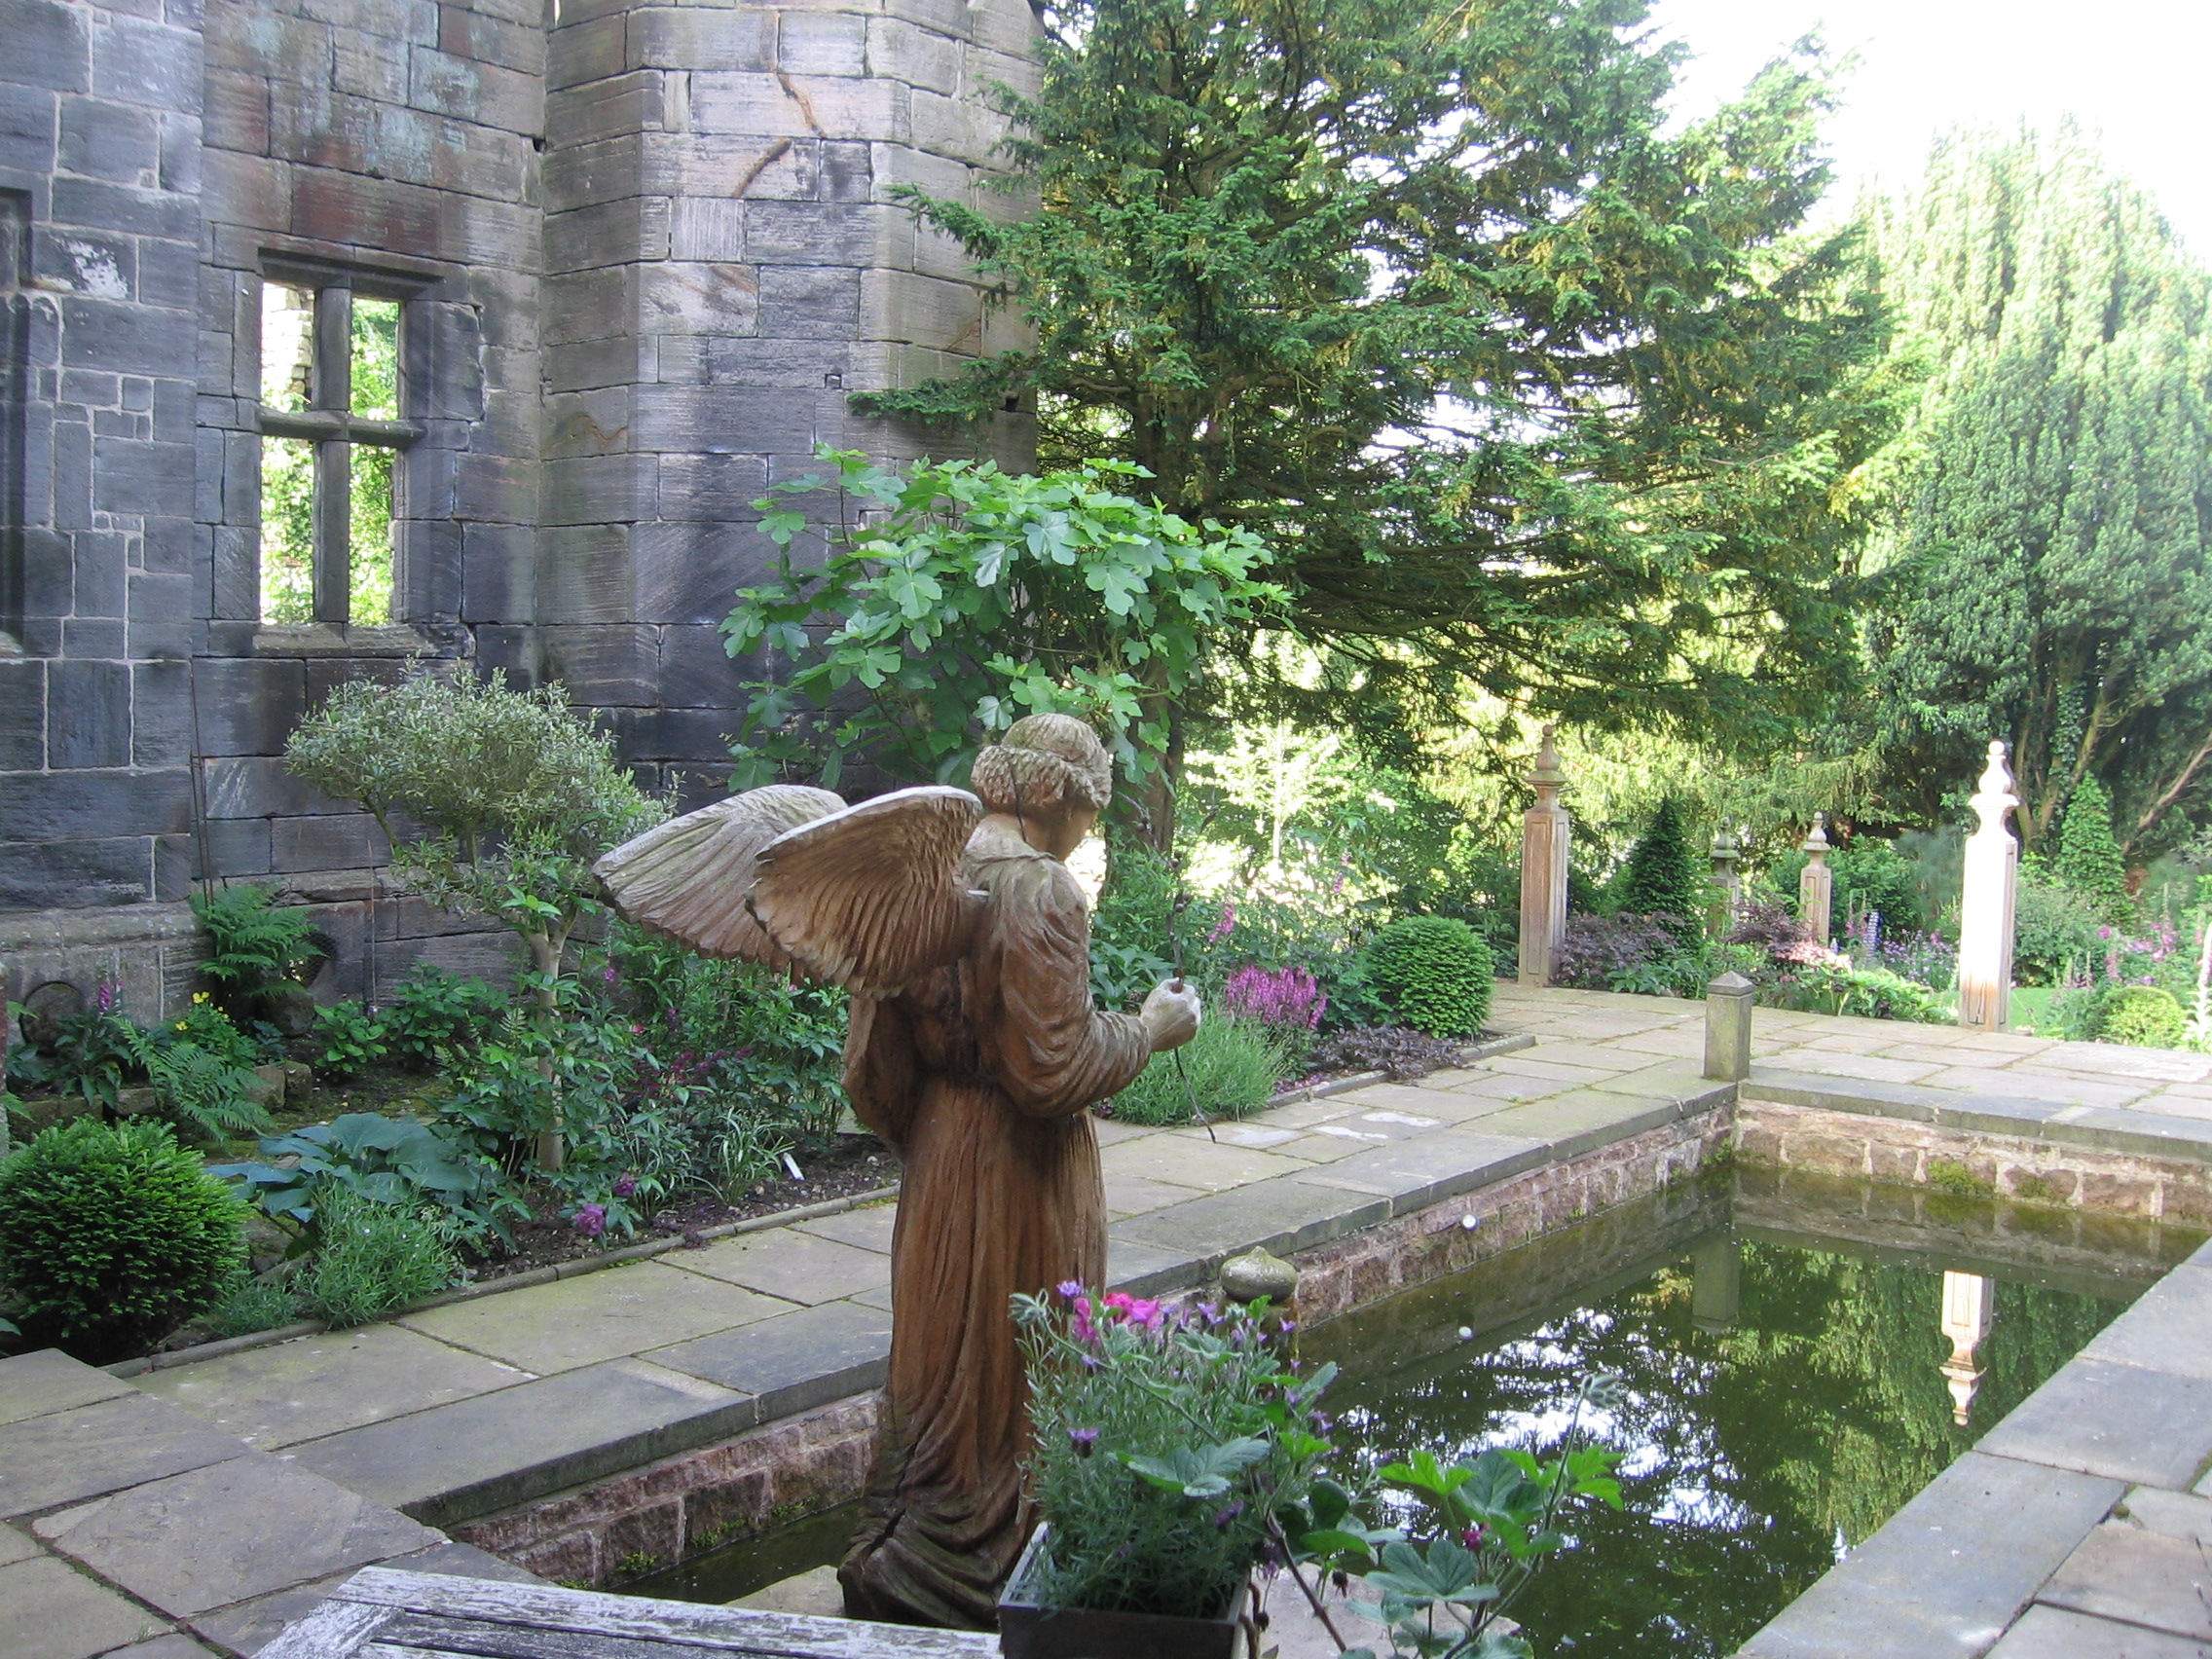 Angel at the Pool of Bethesda by Simon O'Rourke. View is from behind showing the Angel standing by a pool against the background of Old Biddulph Hall